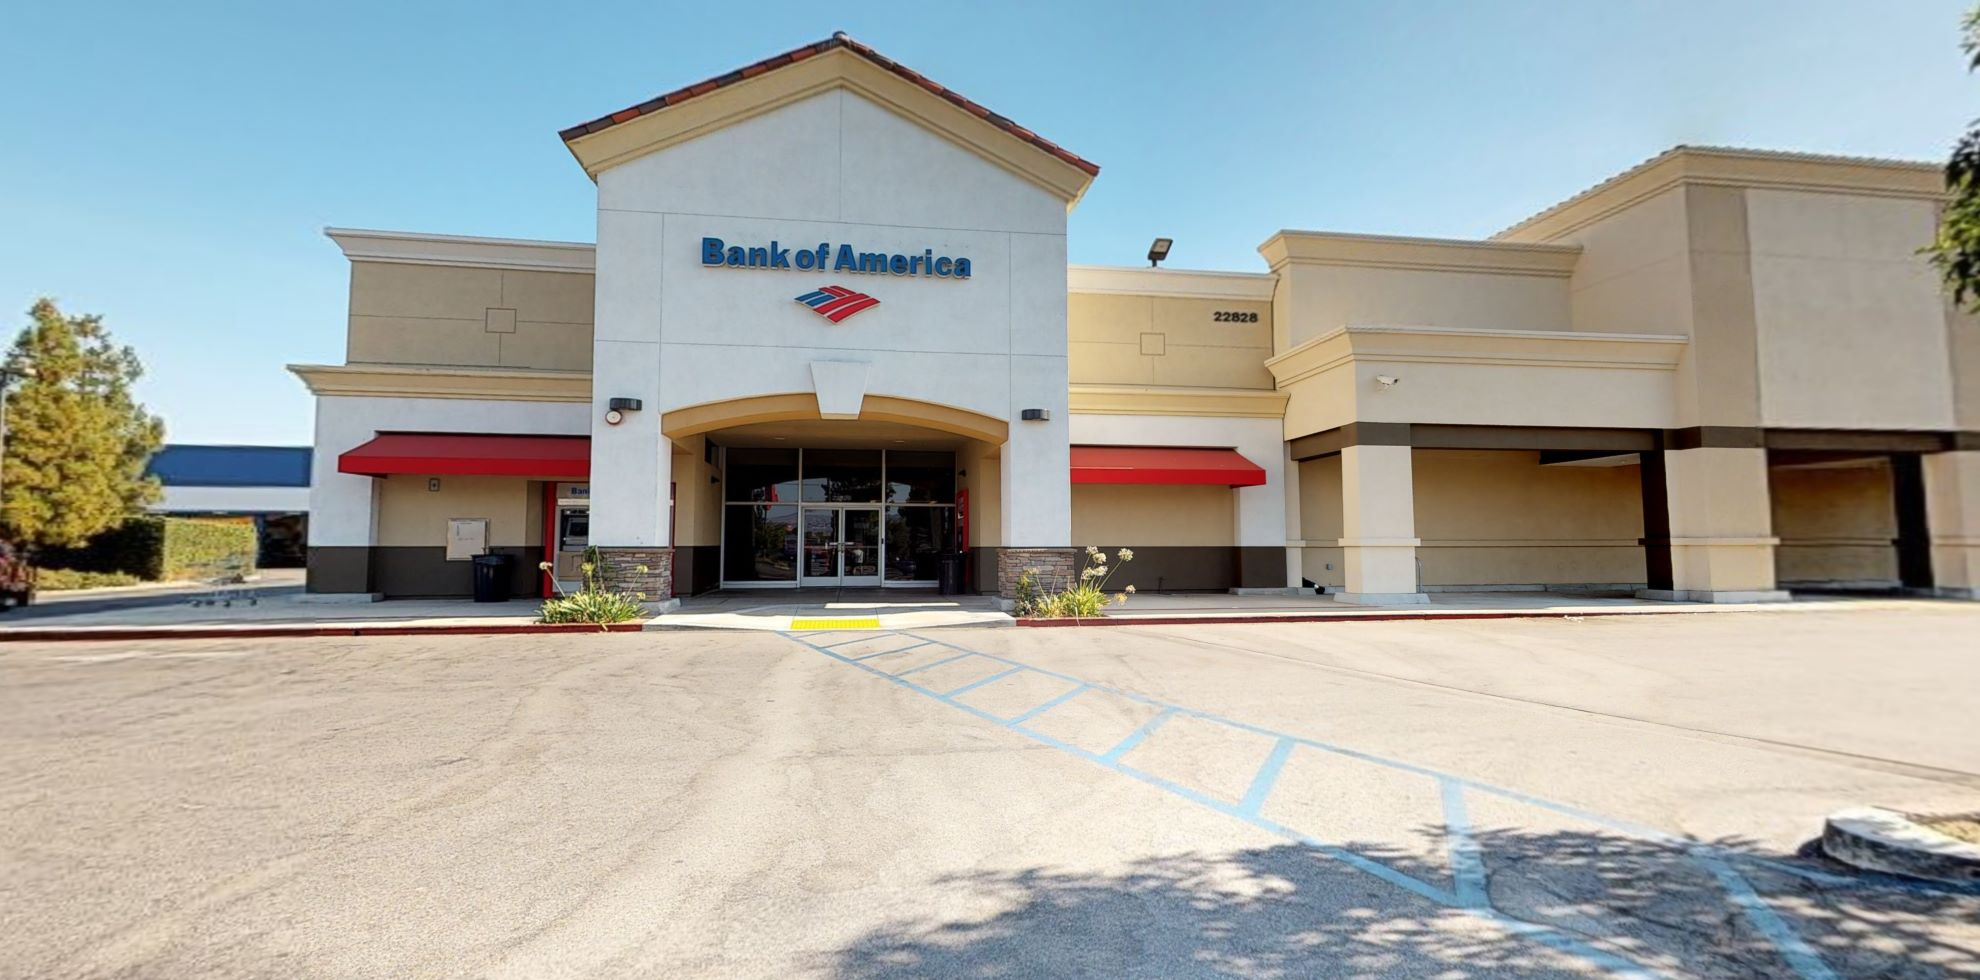 Bank of America financial center with walk-up ATM   22828 Victory Blvd, Woodland Hills, CA 91367